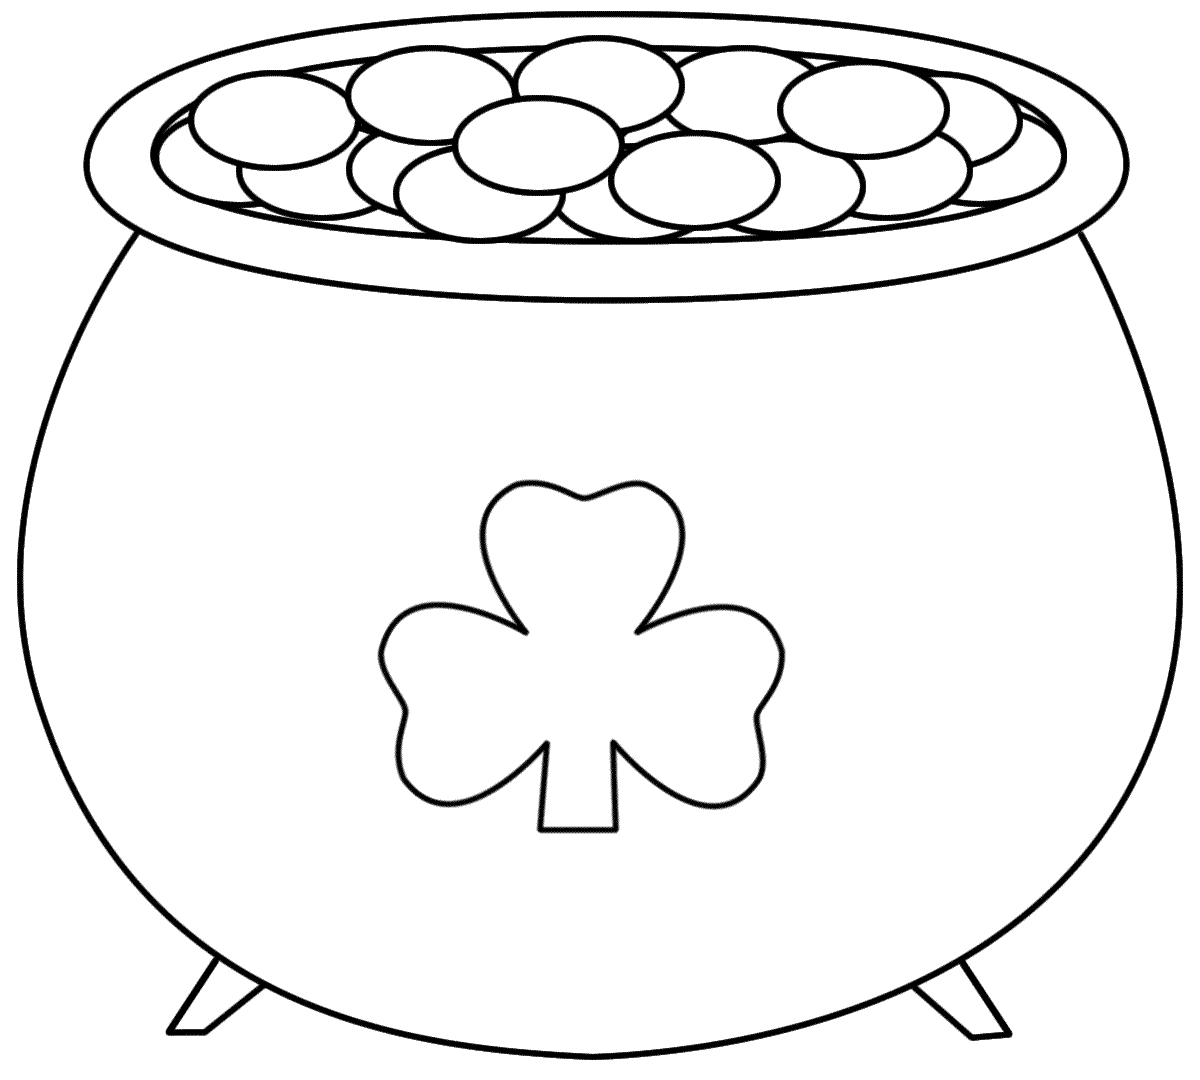 Pot+Of+Gold+Printable | Pot Of Gold - Coloring Pages | Saint - Free Printable Pot Of Gold Coloring Pages